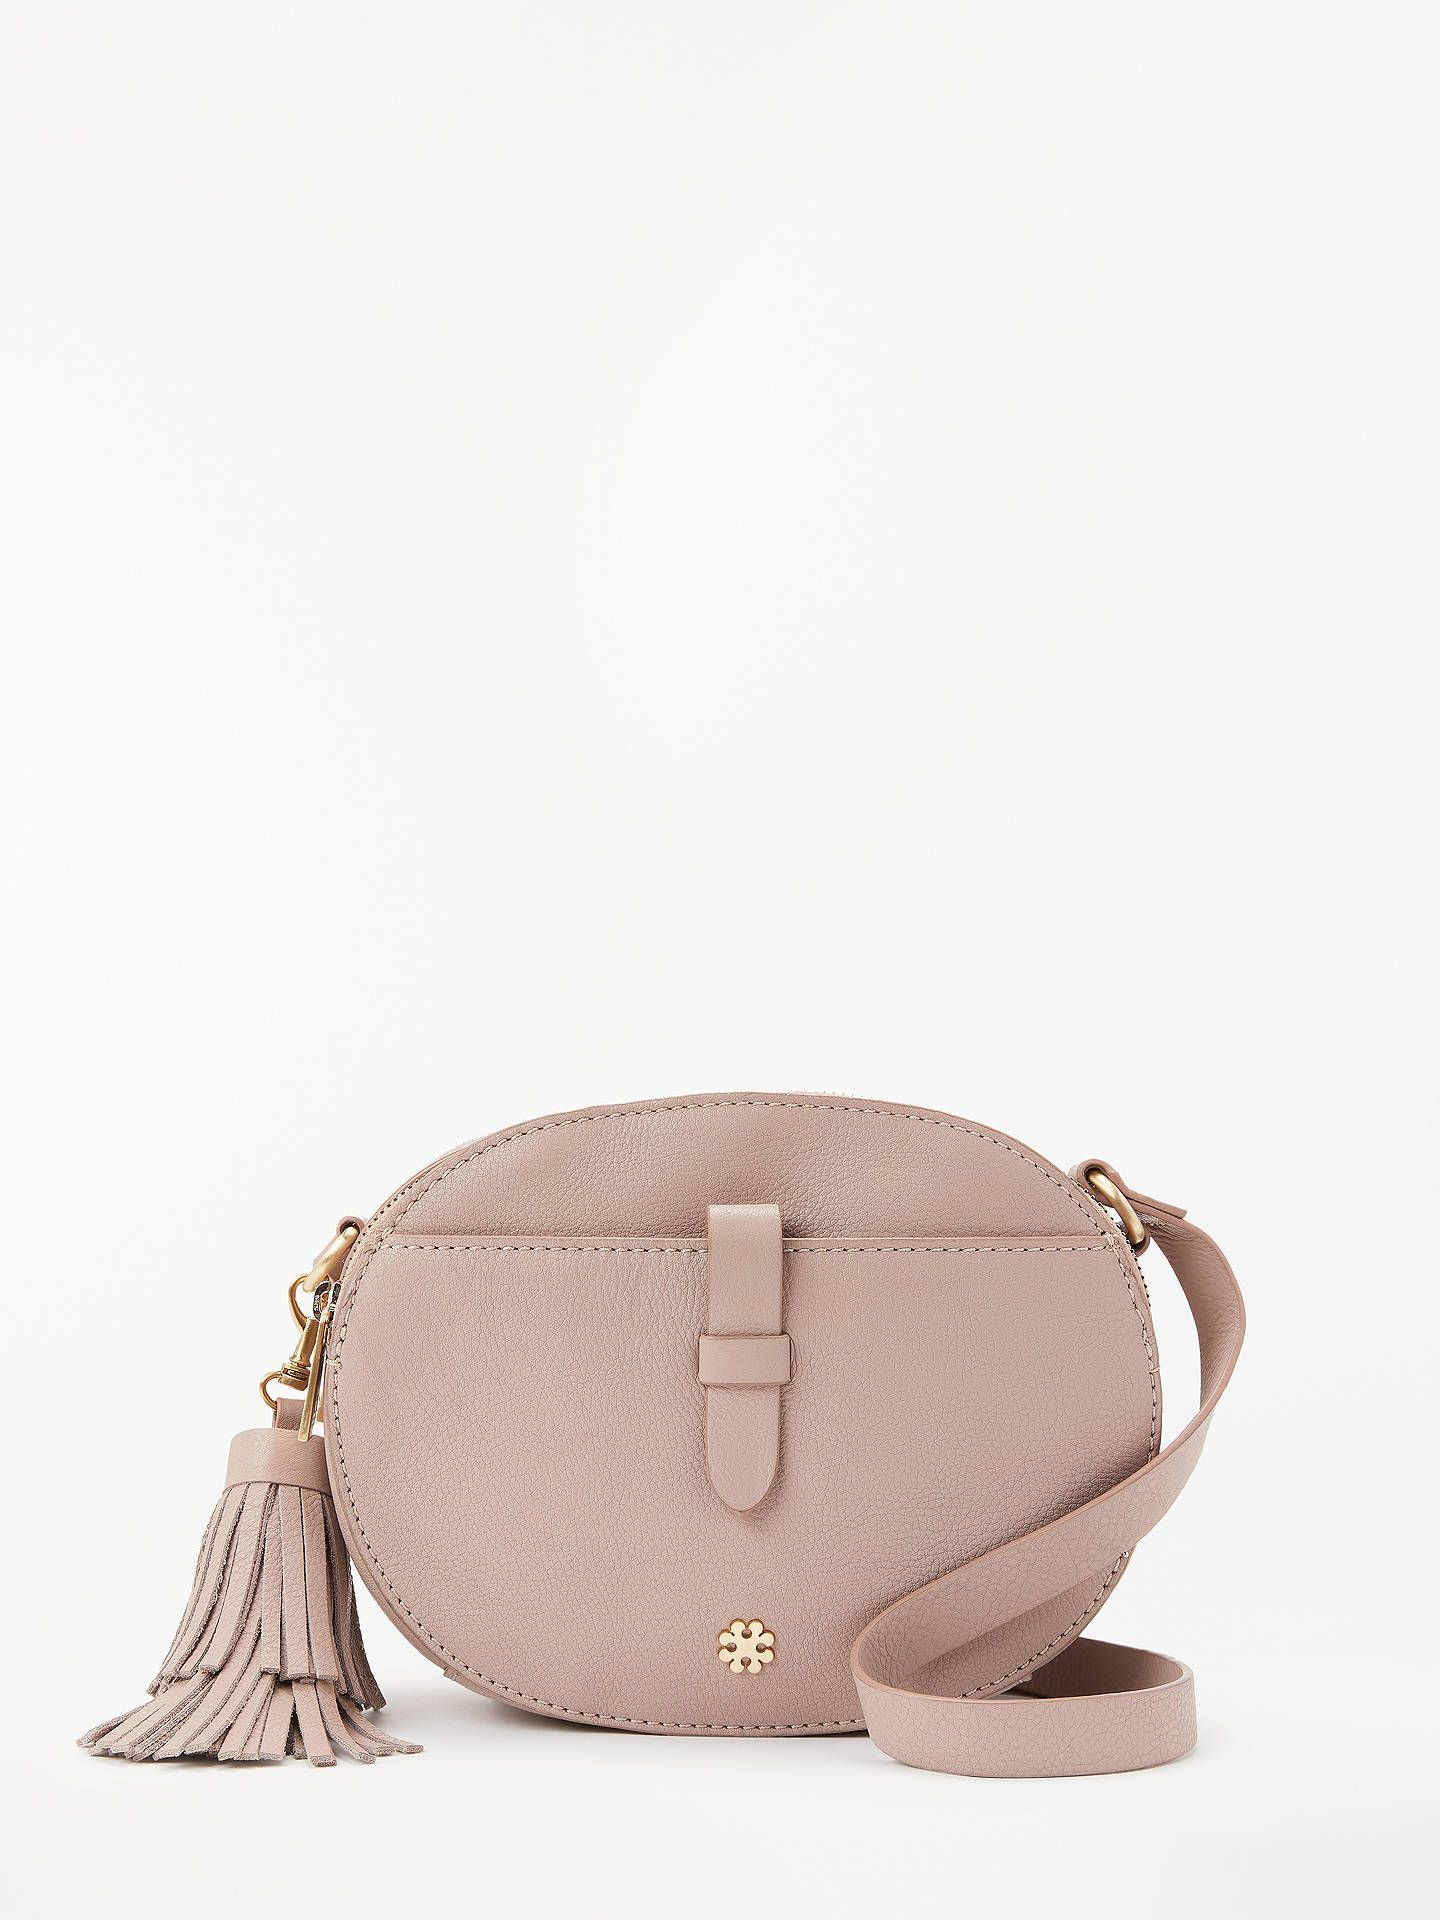 0f3009c0812e DAY et Day Rome Leather Cross Body Bag, Black in 2019 | Shopping ...